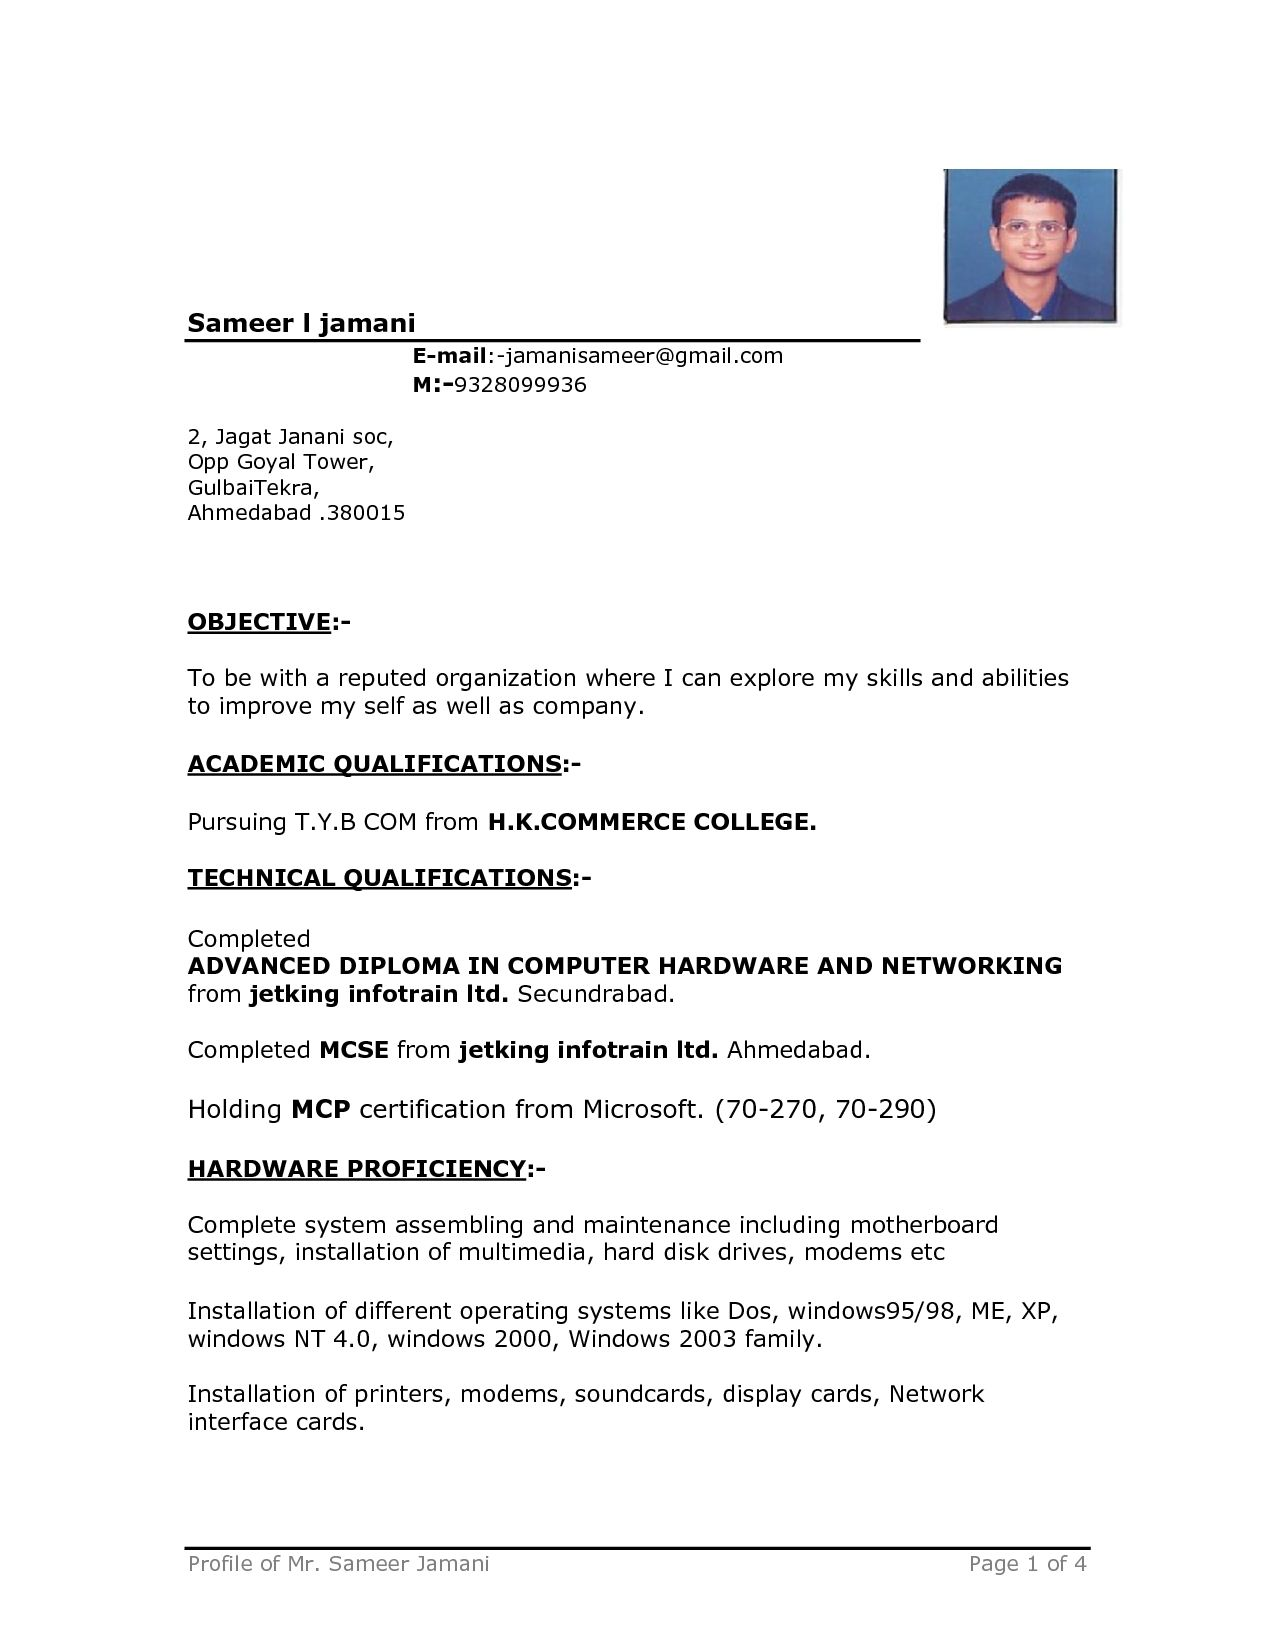 Resume Format On Word Sample Resume Format Word 52076ec40 Resume Format In Word Resume Template Word Microsoft Word Resume Template